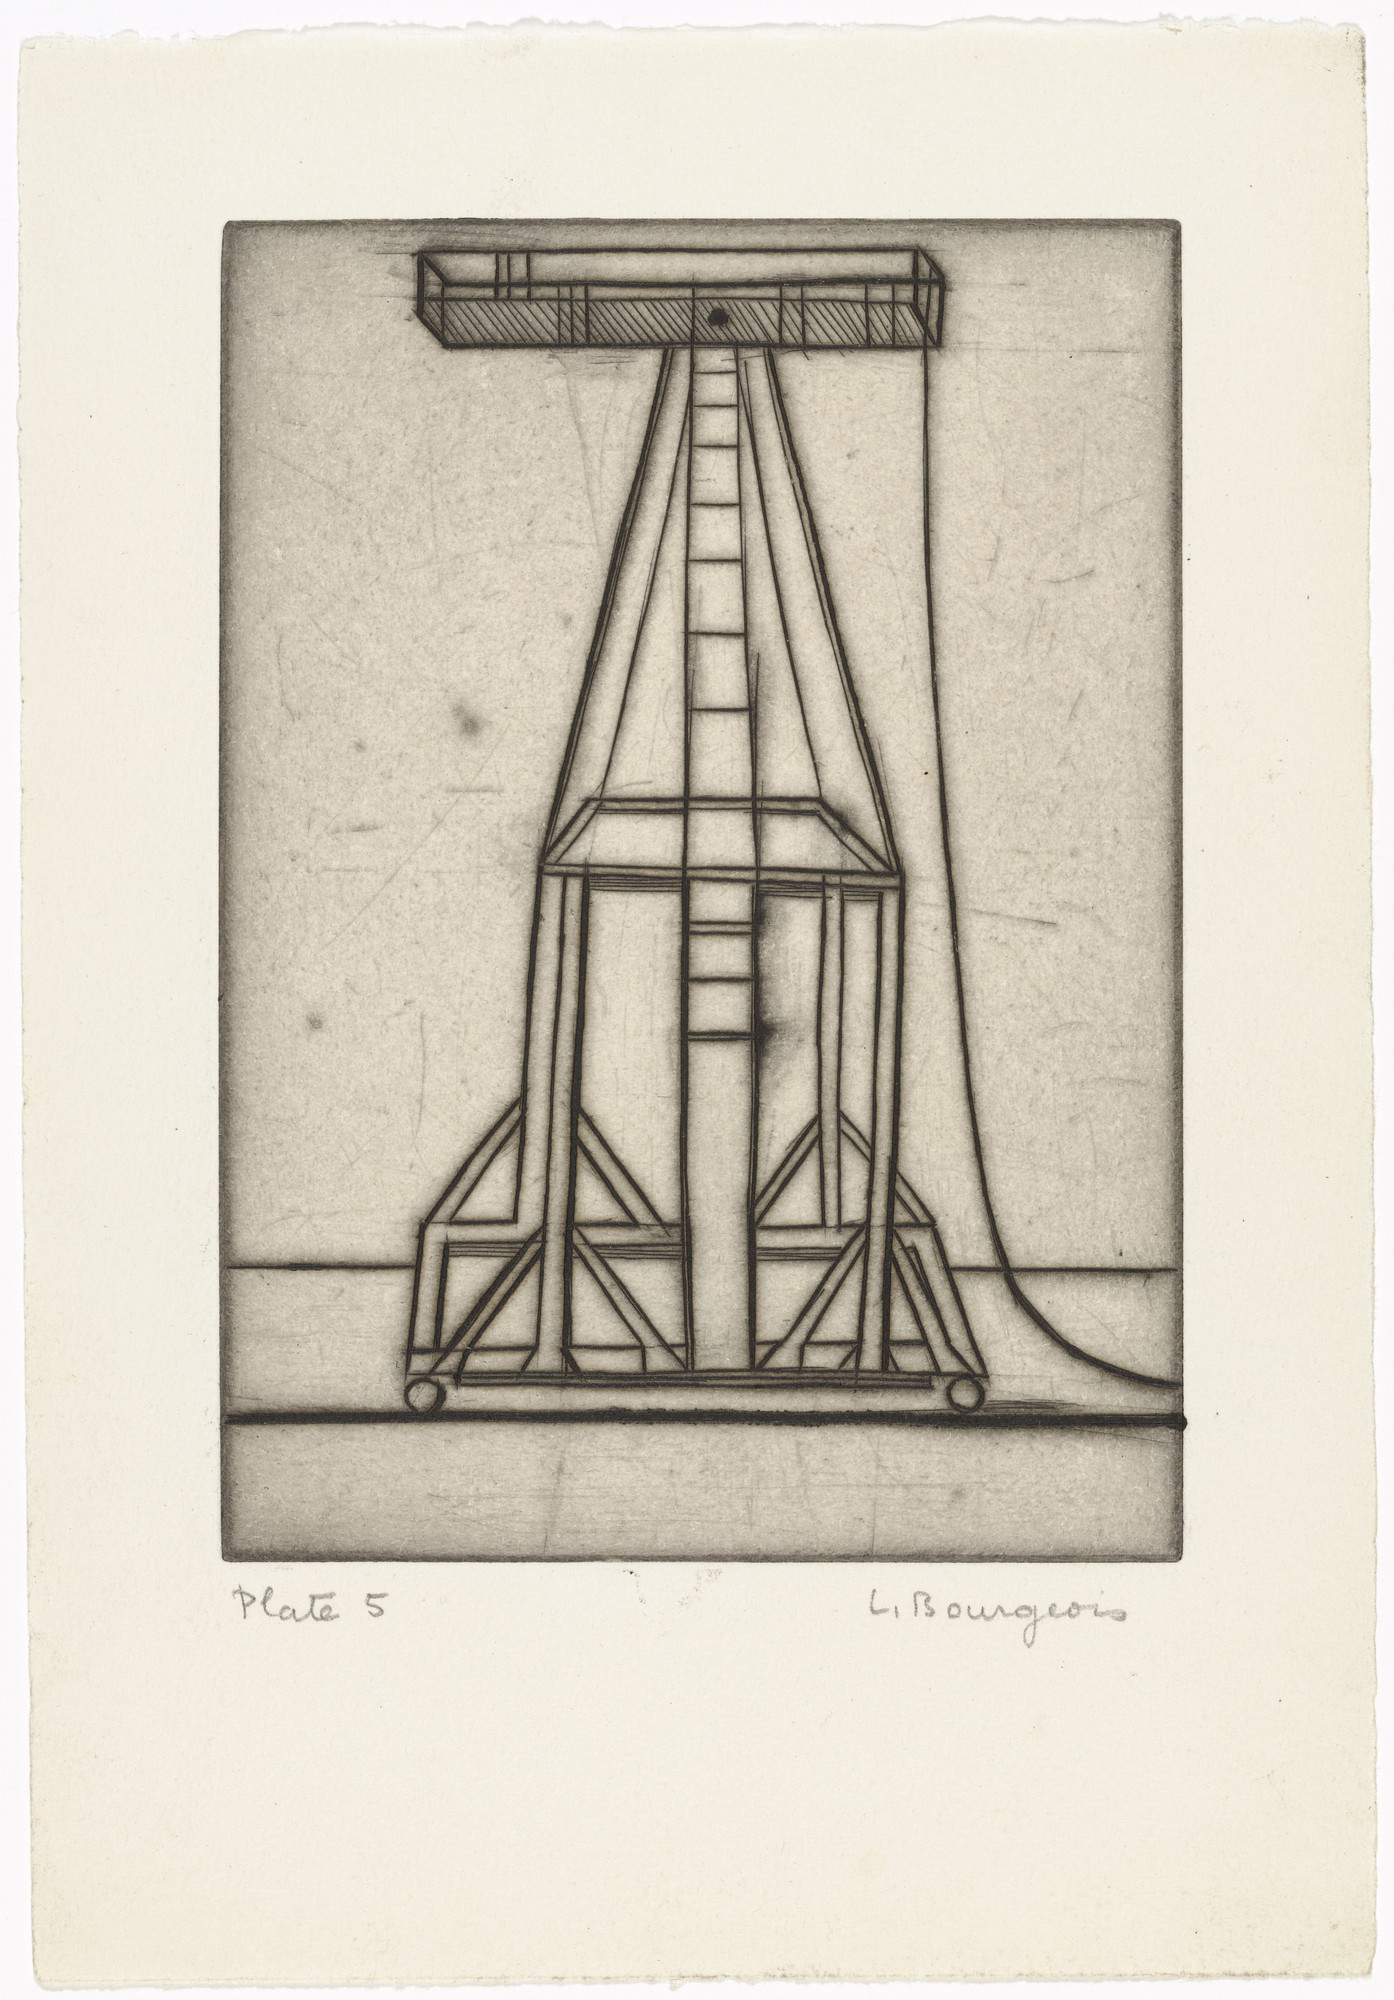 Louise Bourgeois. Plate 5 of 9, from the illustrated book, He Disappeared into Complete Silence, first edition (Example 1). 1947